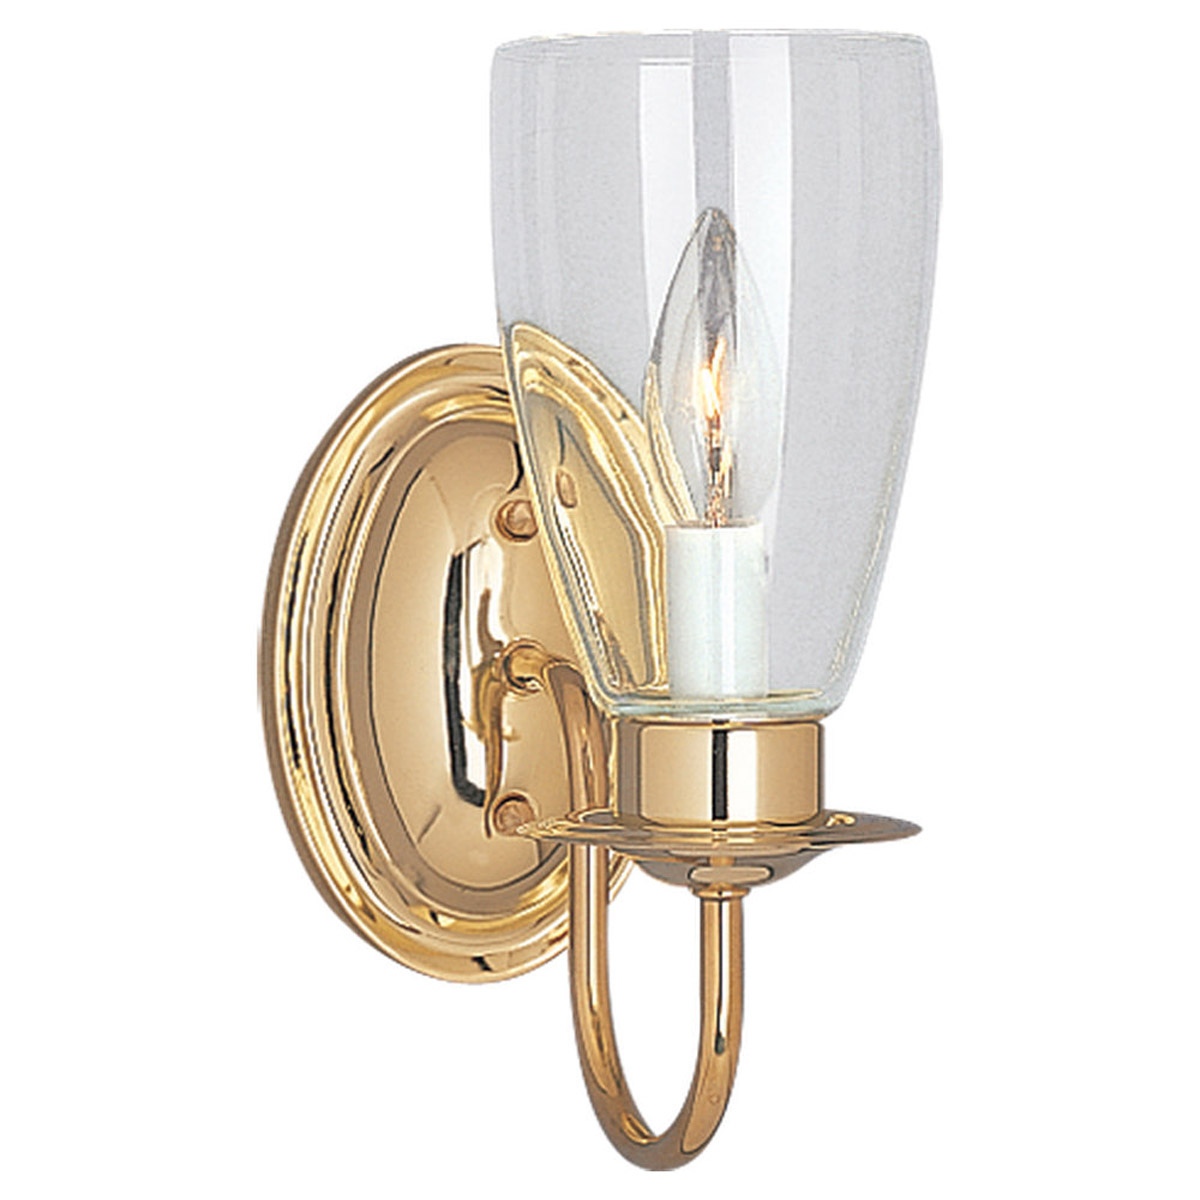 Sea Gull Lighting Traditional 1 Light Bath Vanity in Polished Brass 4167-02 photo